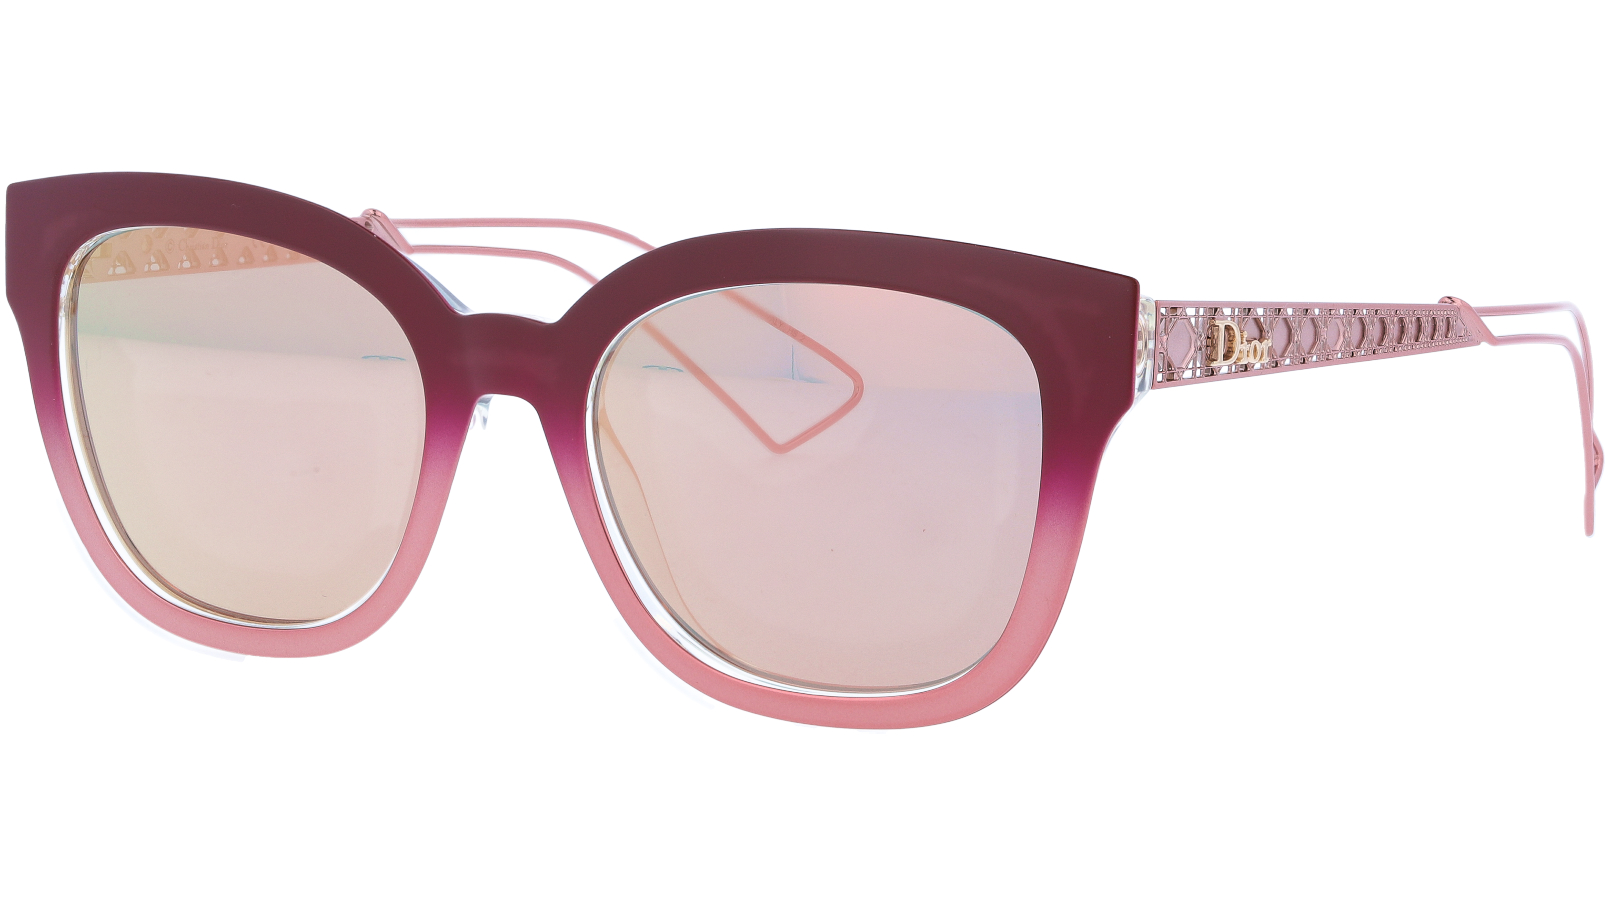 DIOR DIORAMA1 2IF0J 52 MTBURG Sunglasses